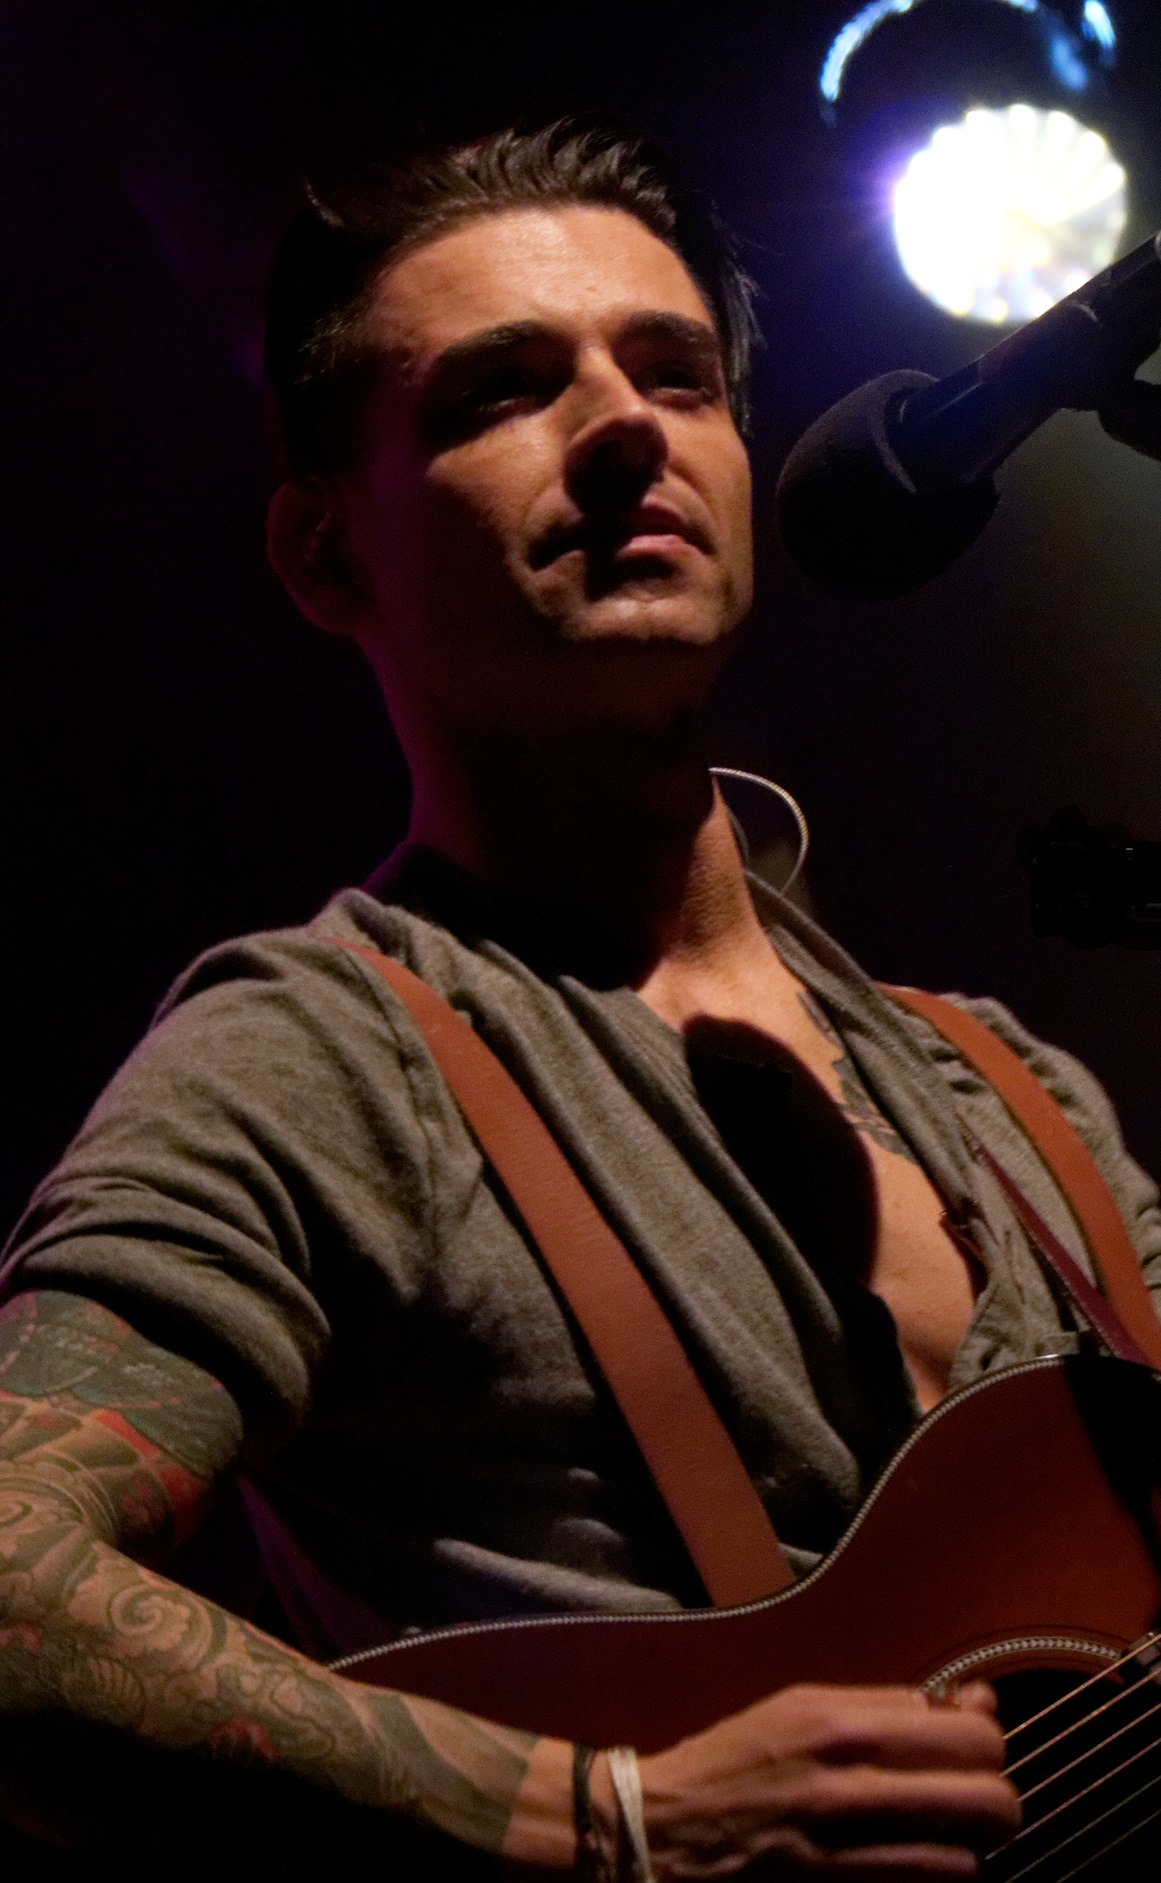 Chris Carrabba - Wikipedia